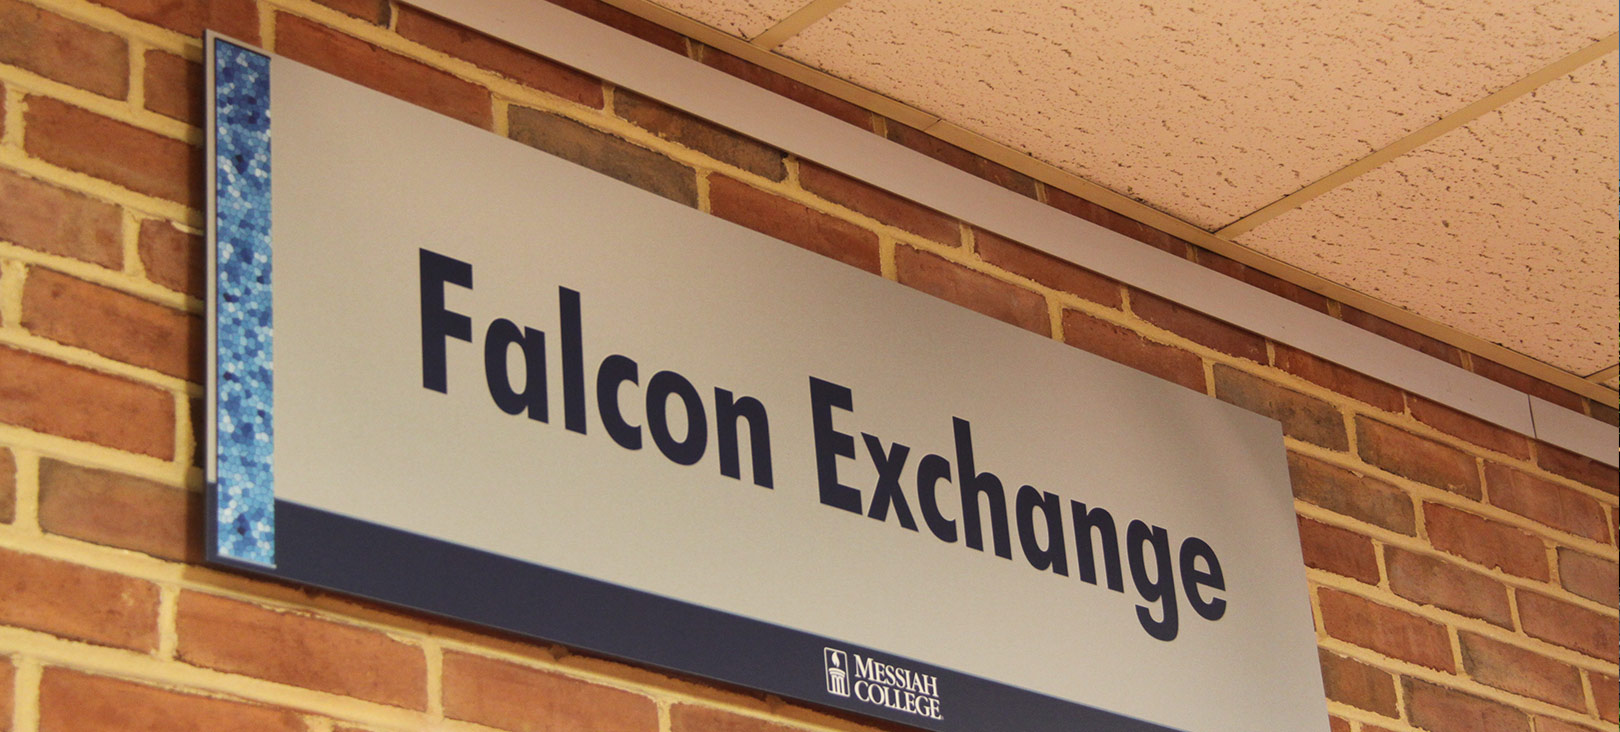 Falcon Exchange falconexchange.jpg